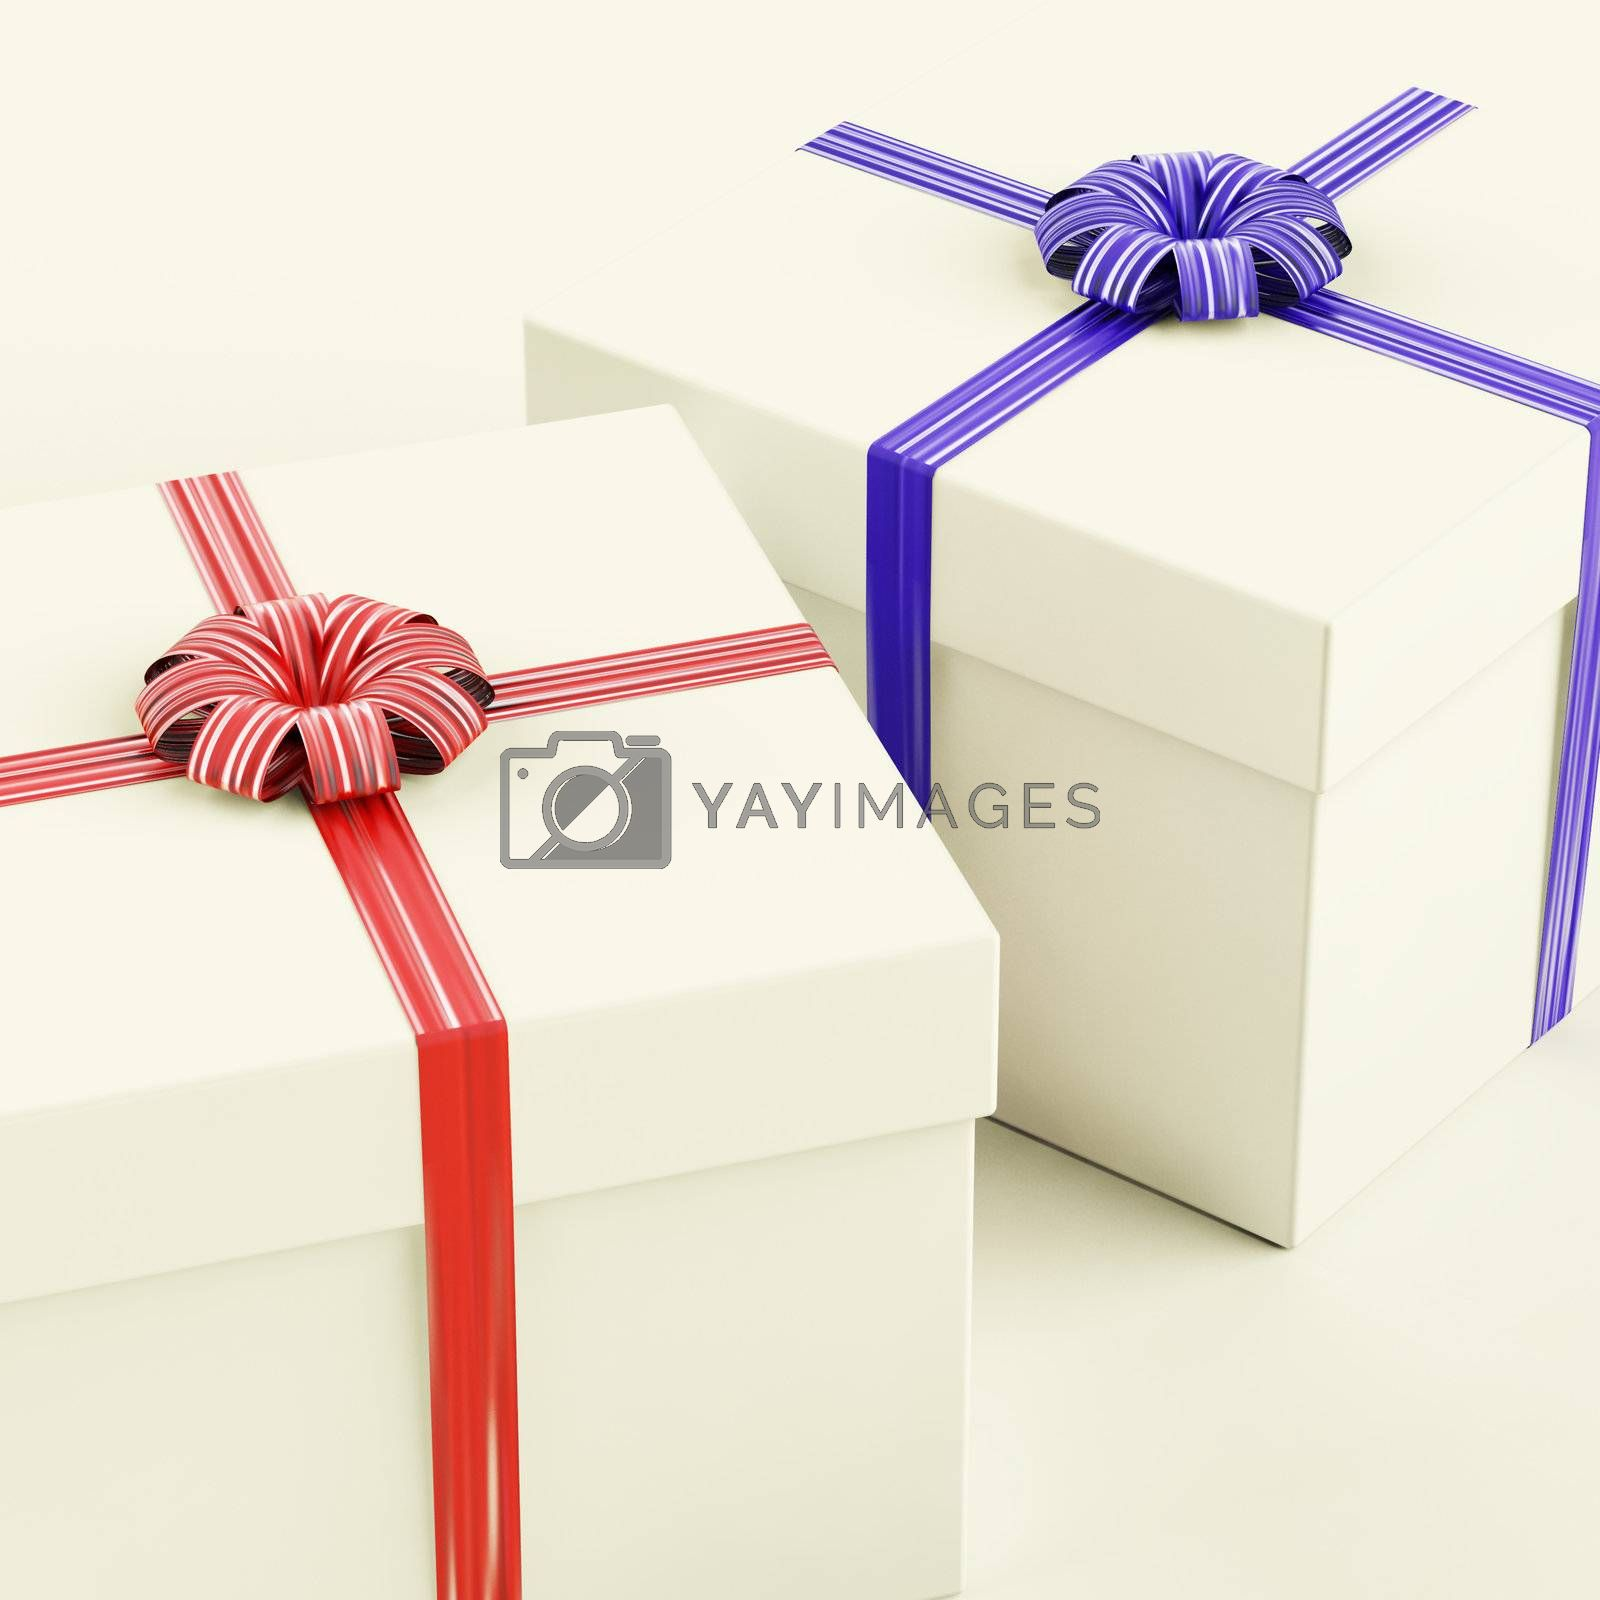 Gift Boxes With Blue And Red Ribbons As Present For Him And Her